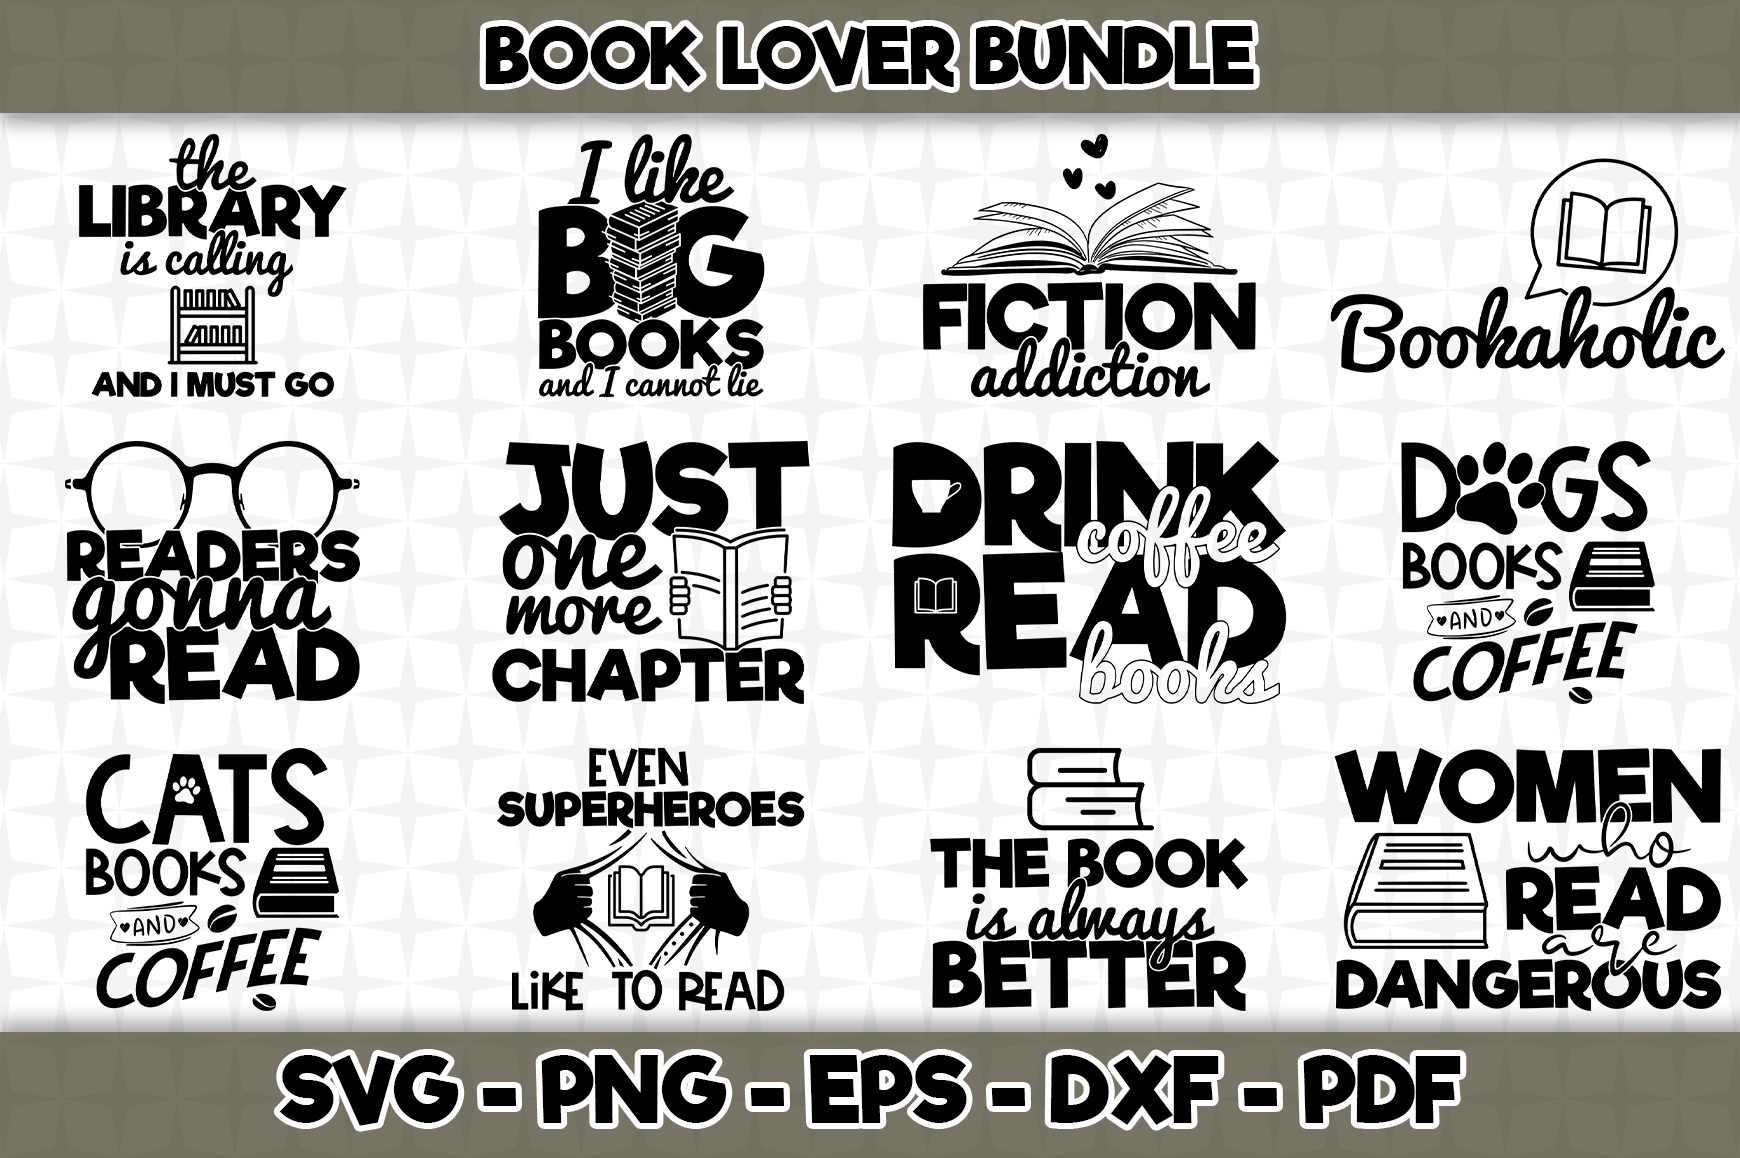 Book Lover Bundle 12 Designs Graphic By Svgexpress Creative